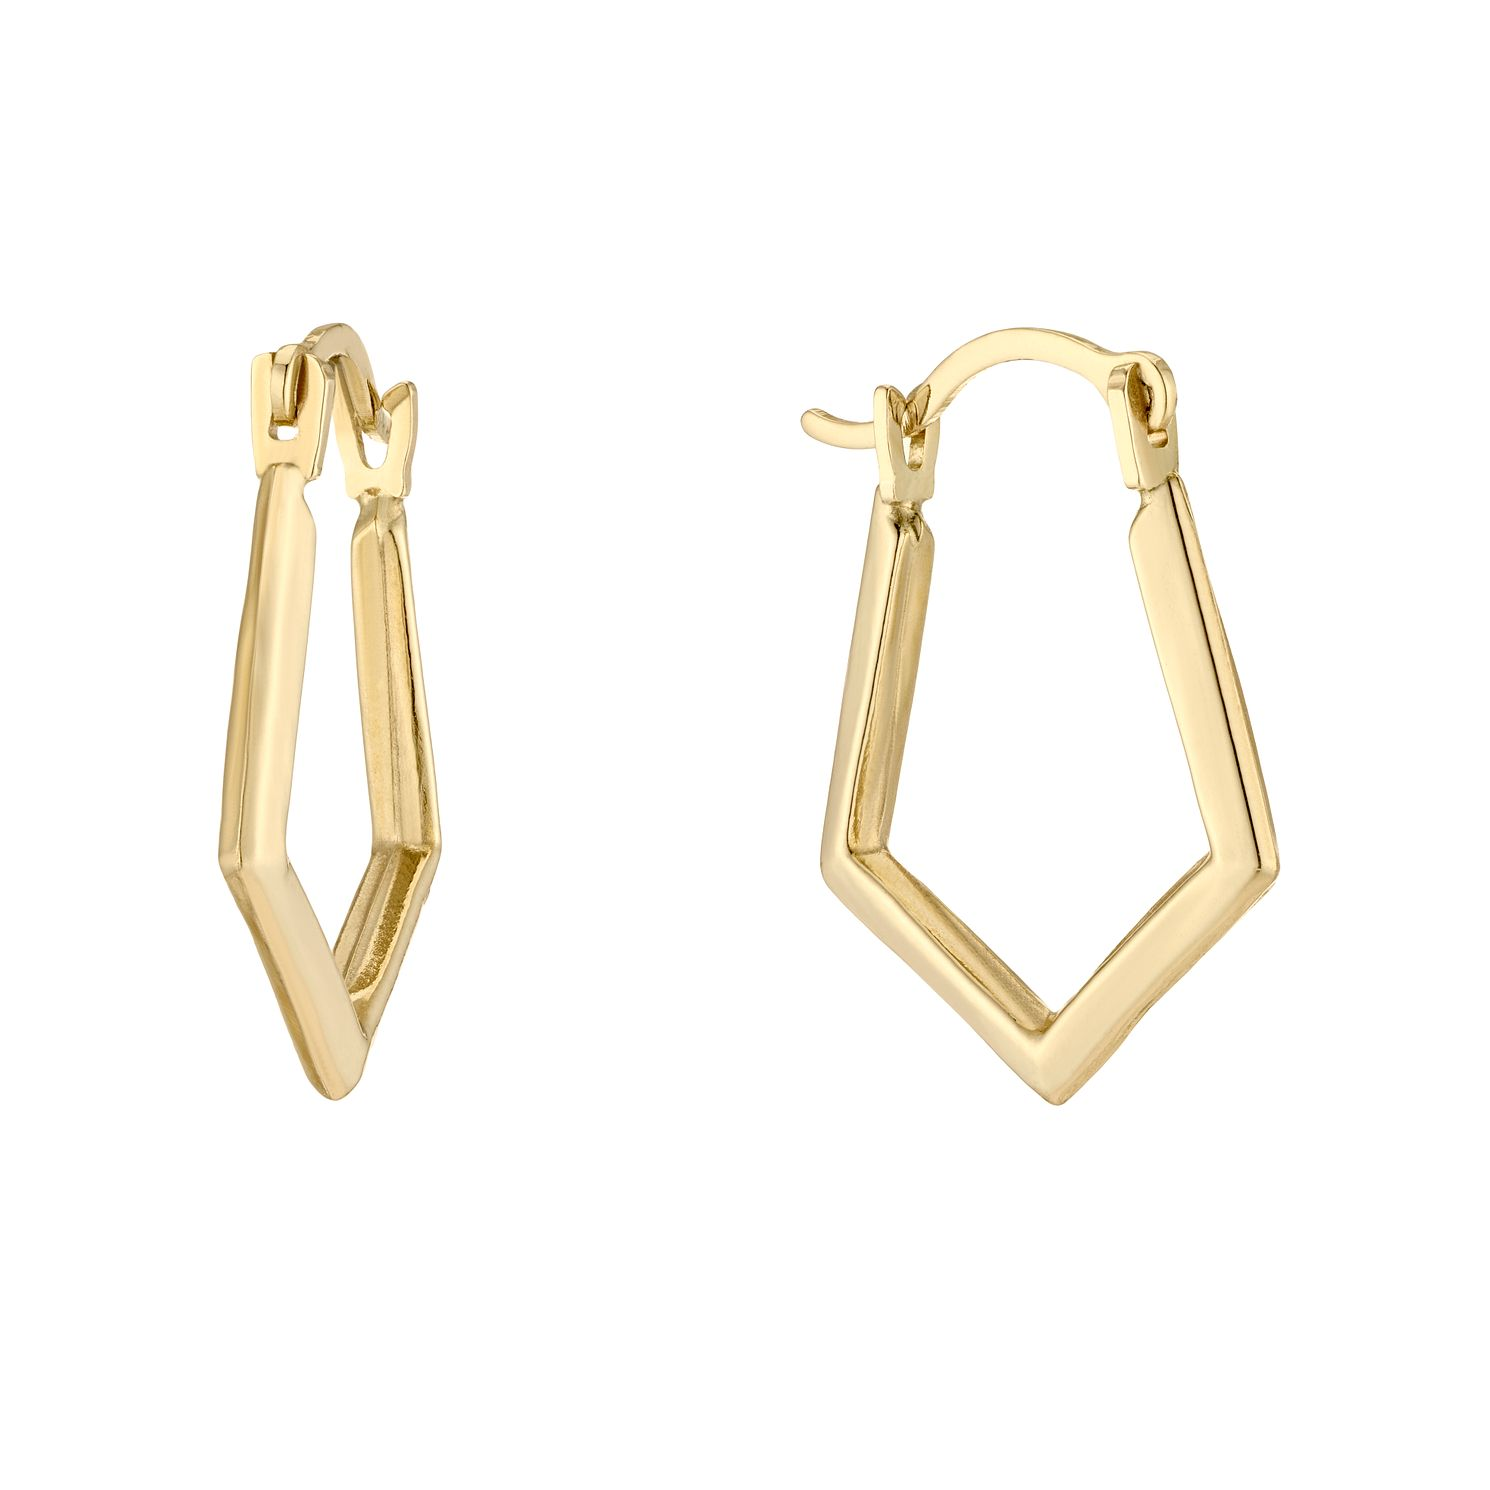 9ct Yellow Gold Pointed Creole Earrings - Product number 5230446